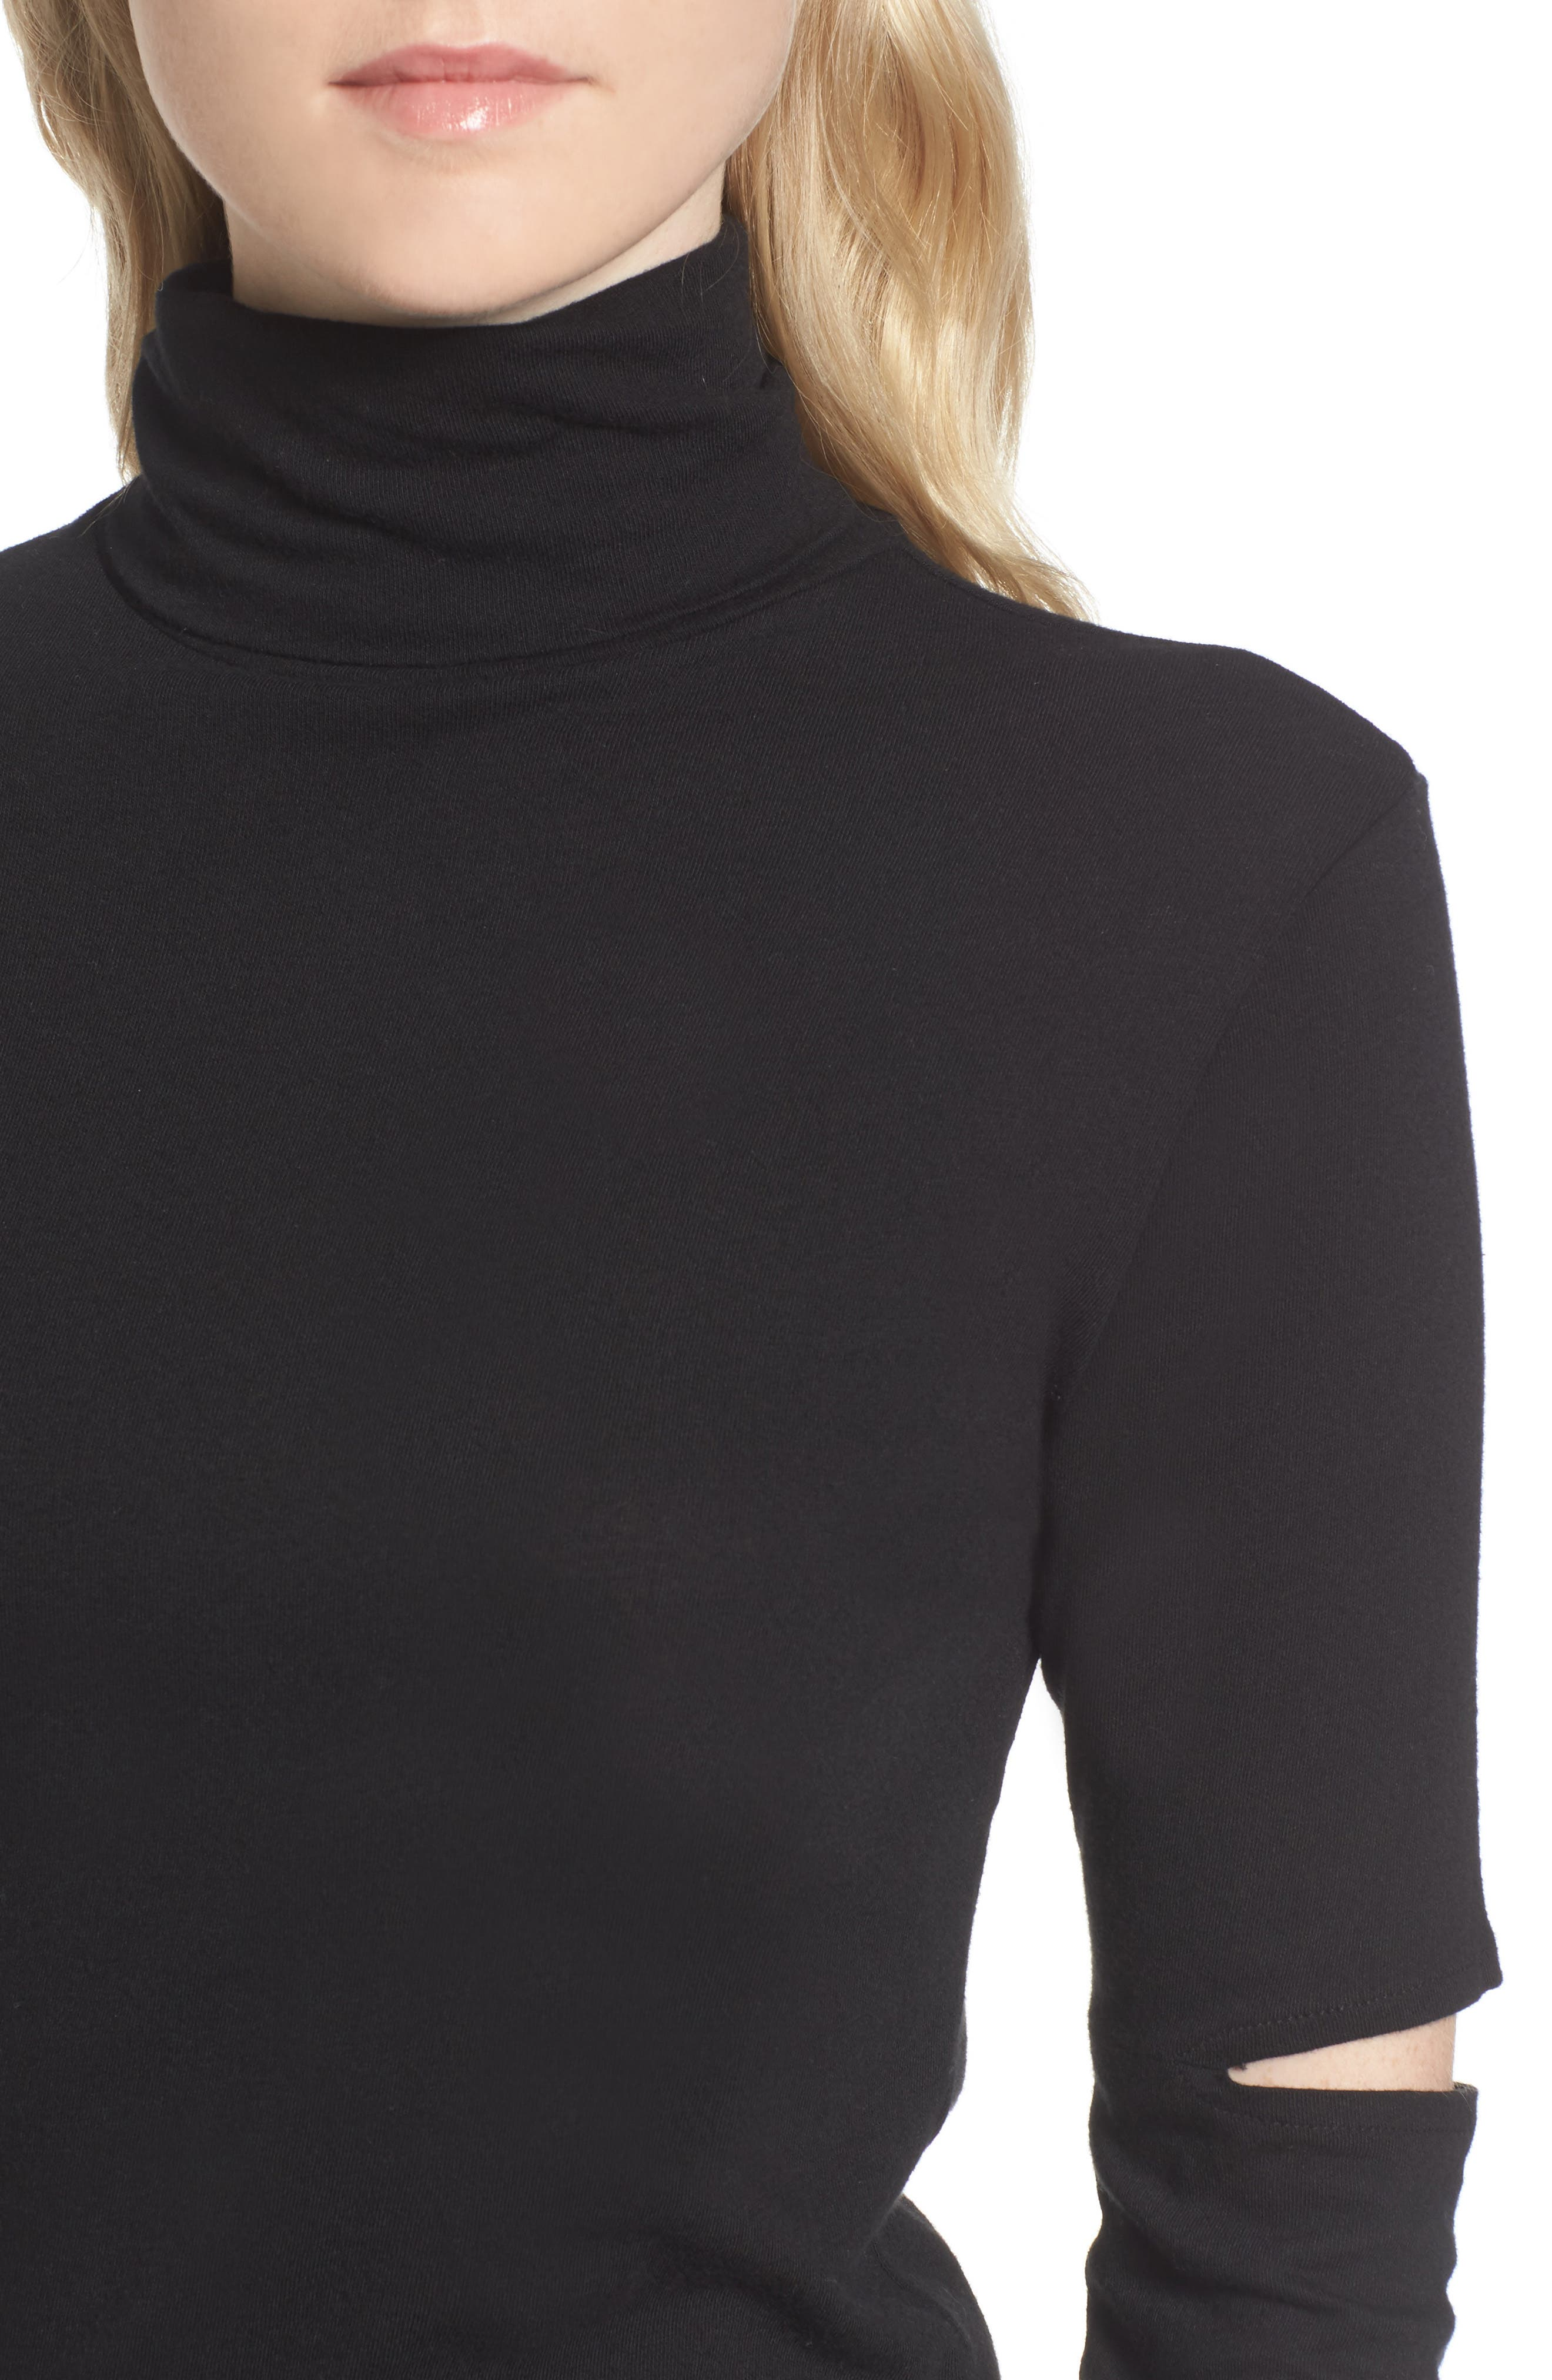 Easton Cutout Turtleneck,                             Alternate thumbnail 4, color,                             001